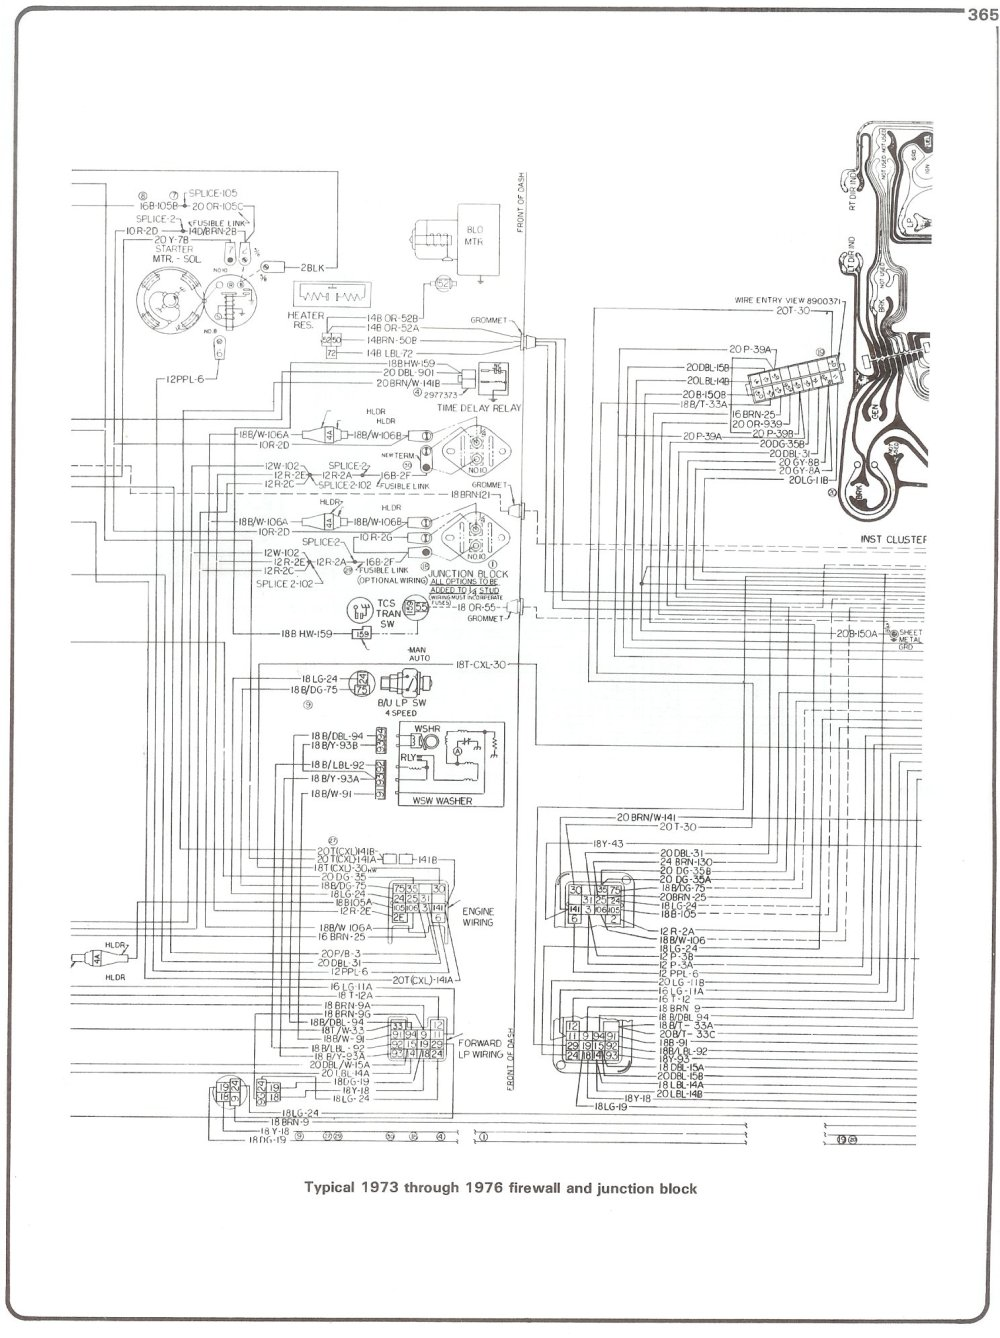 medium resolution of 1992 camaro fuse panel diagram